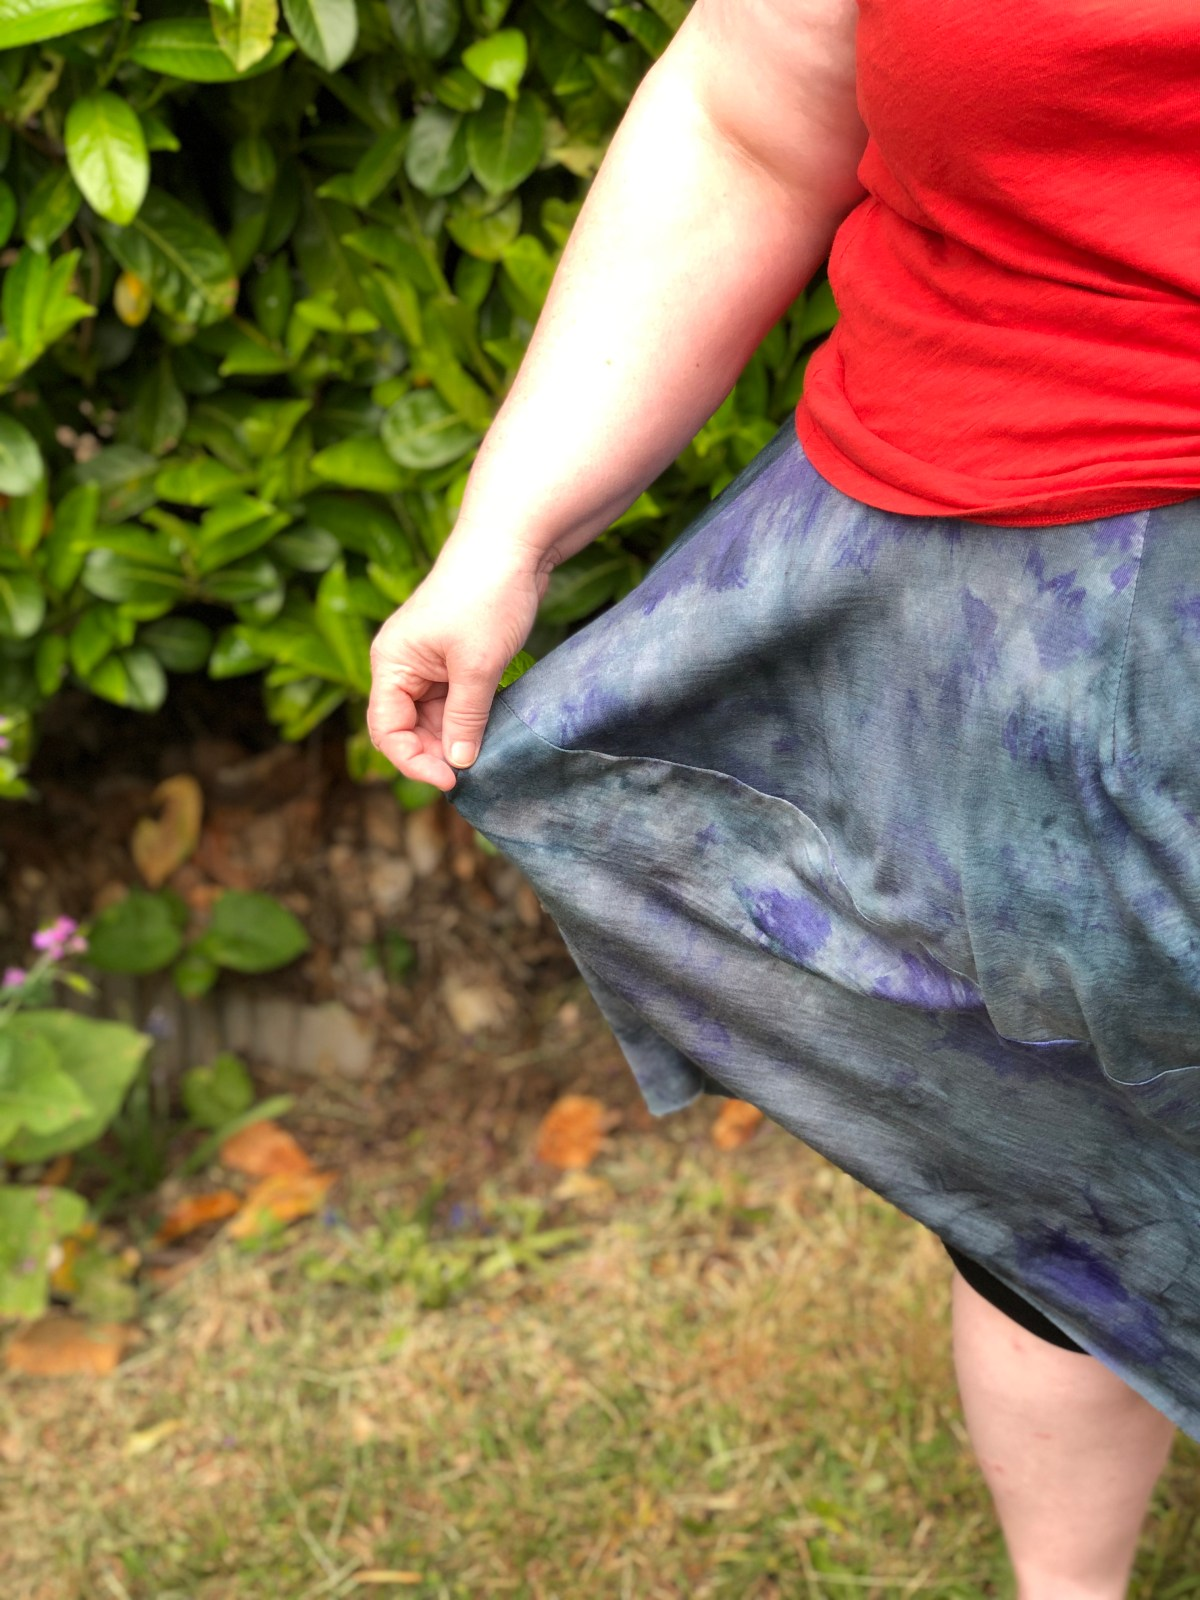 A detail of the skirt that highlights the drape of the fabric and its colors, blue, dark blue, and purple